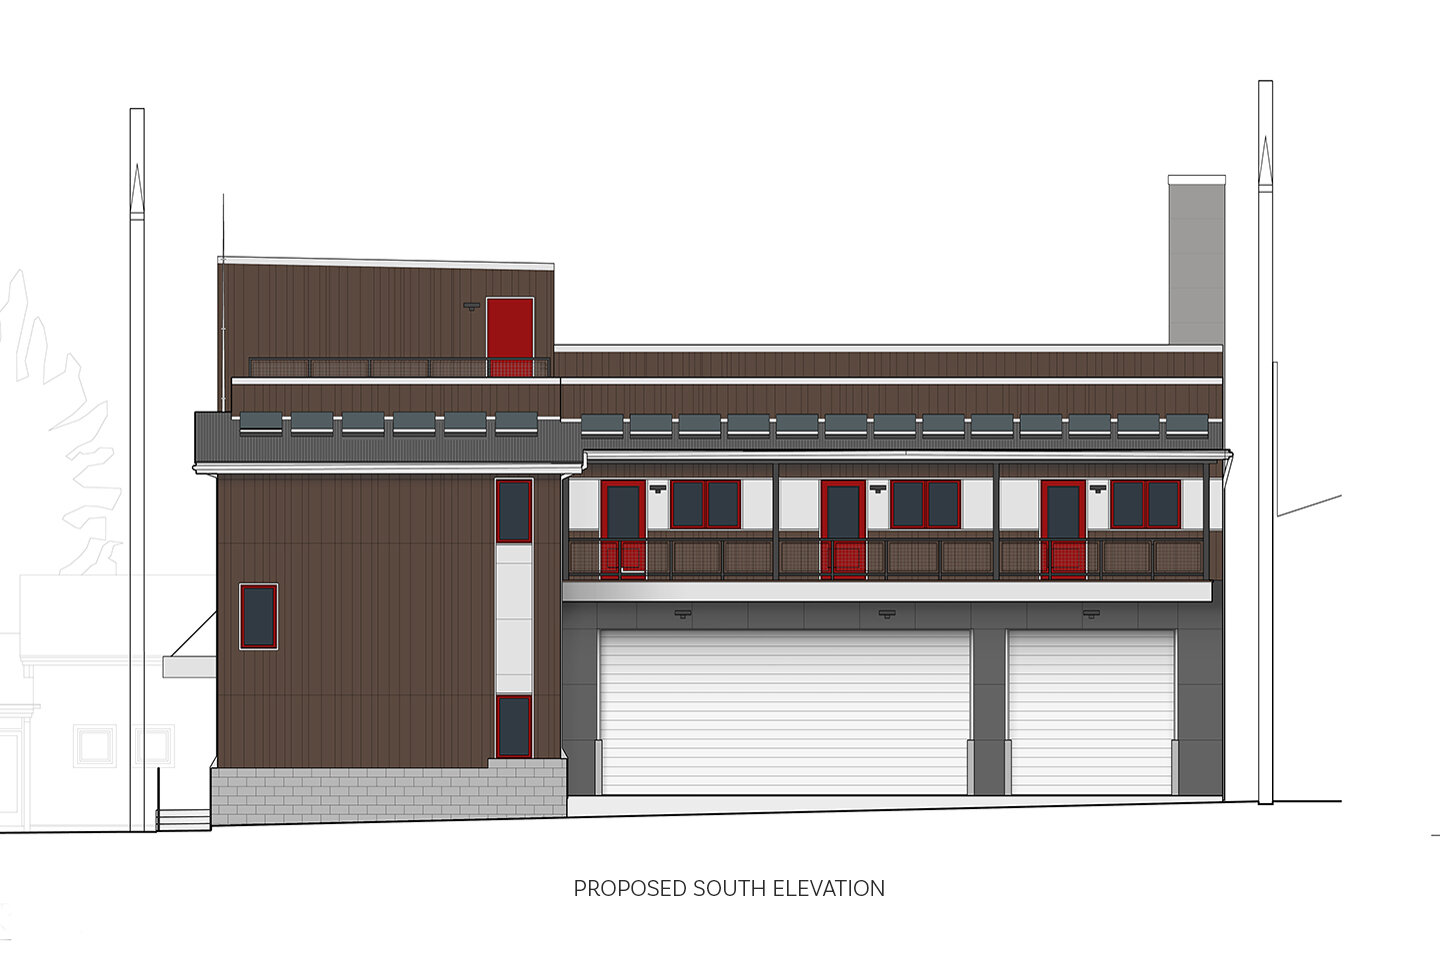 Proposed South elevation plan